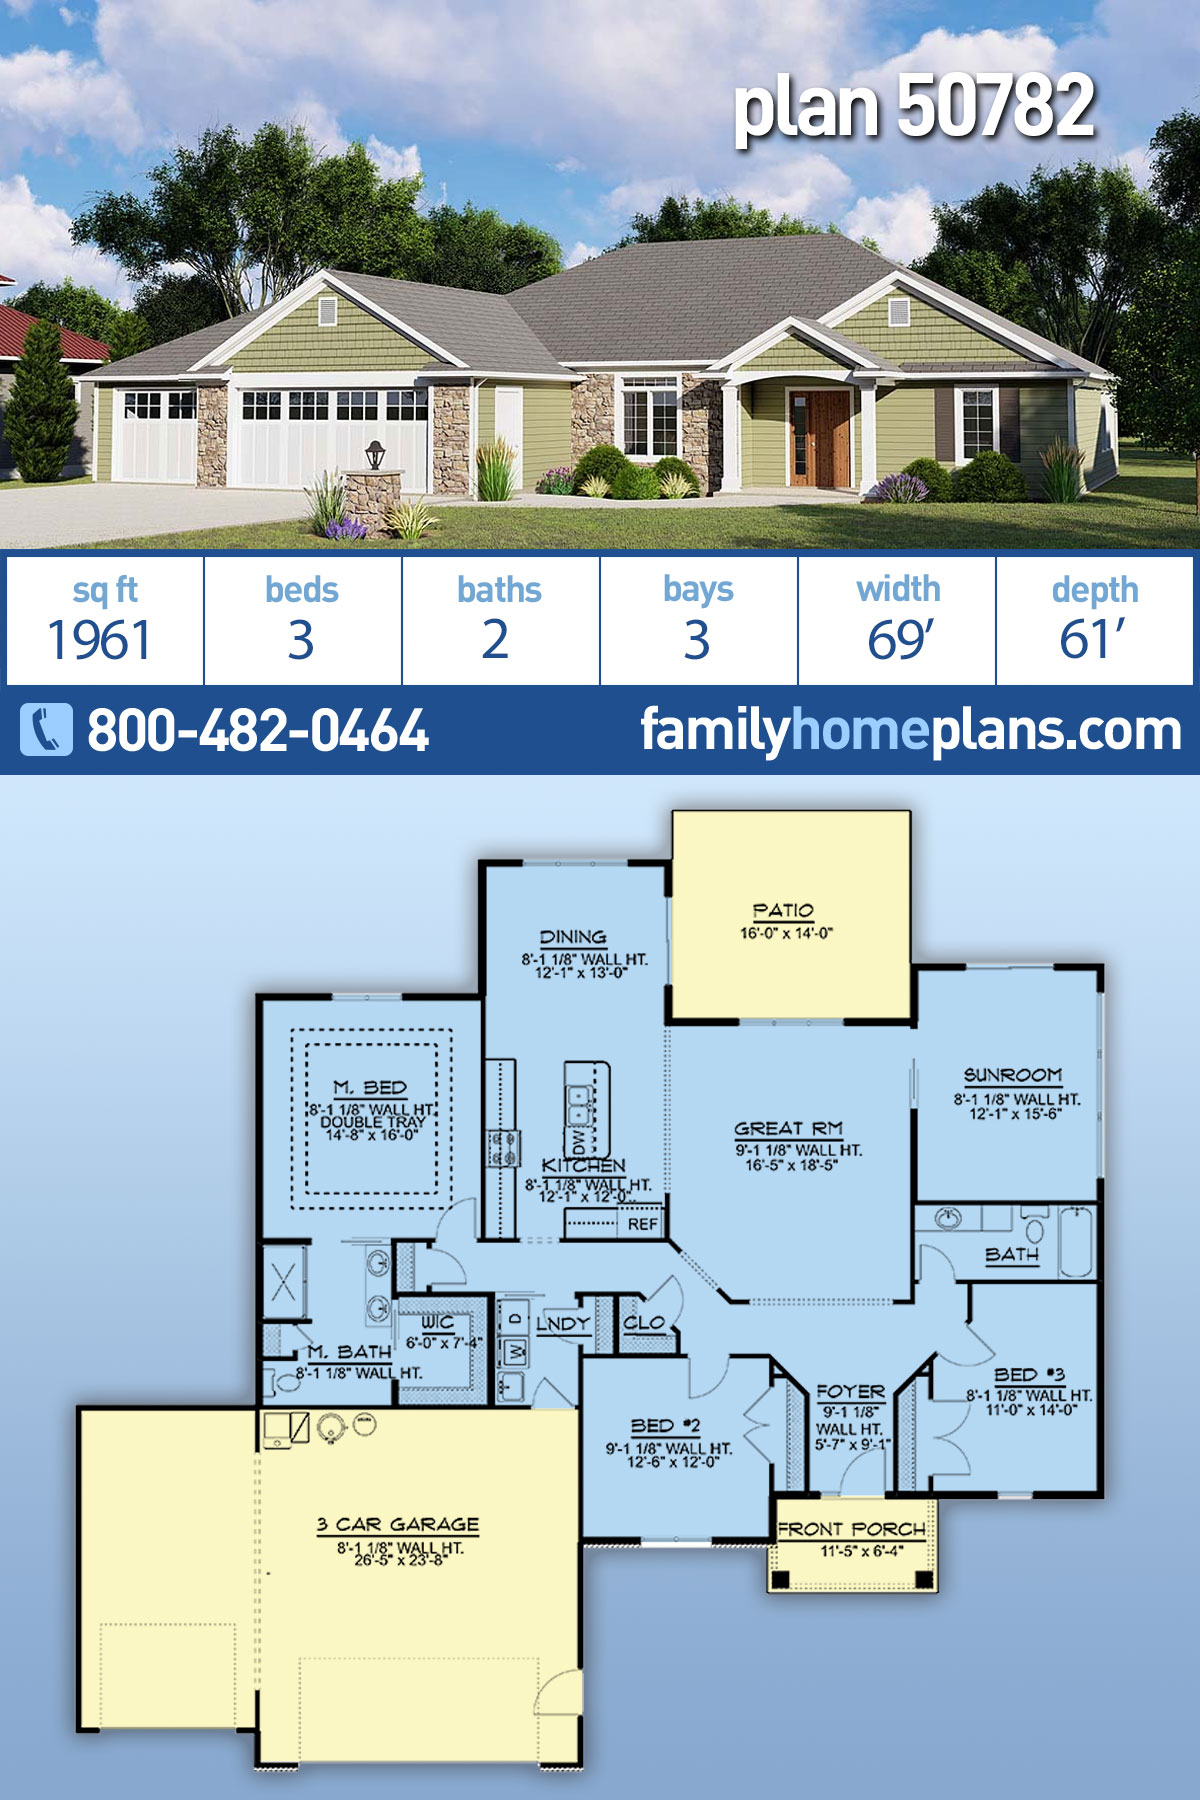 Ranch House Plan 50782 with 3 Beds, 2 Baths, 3 Car Garage